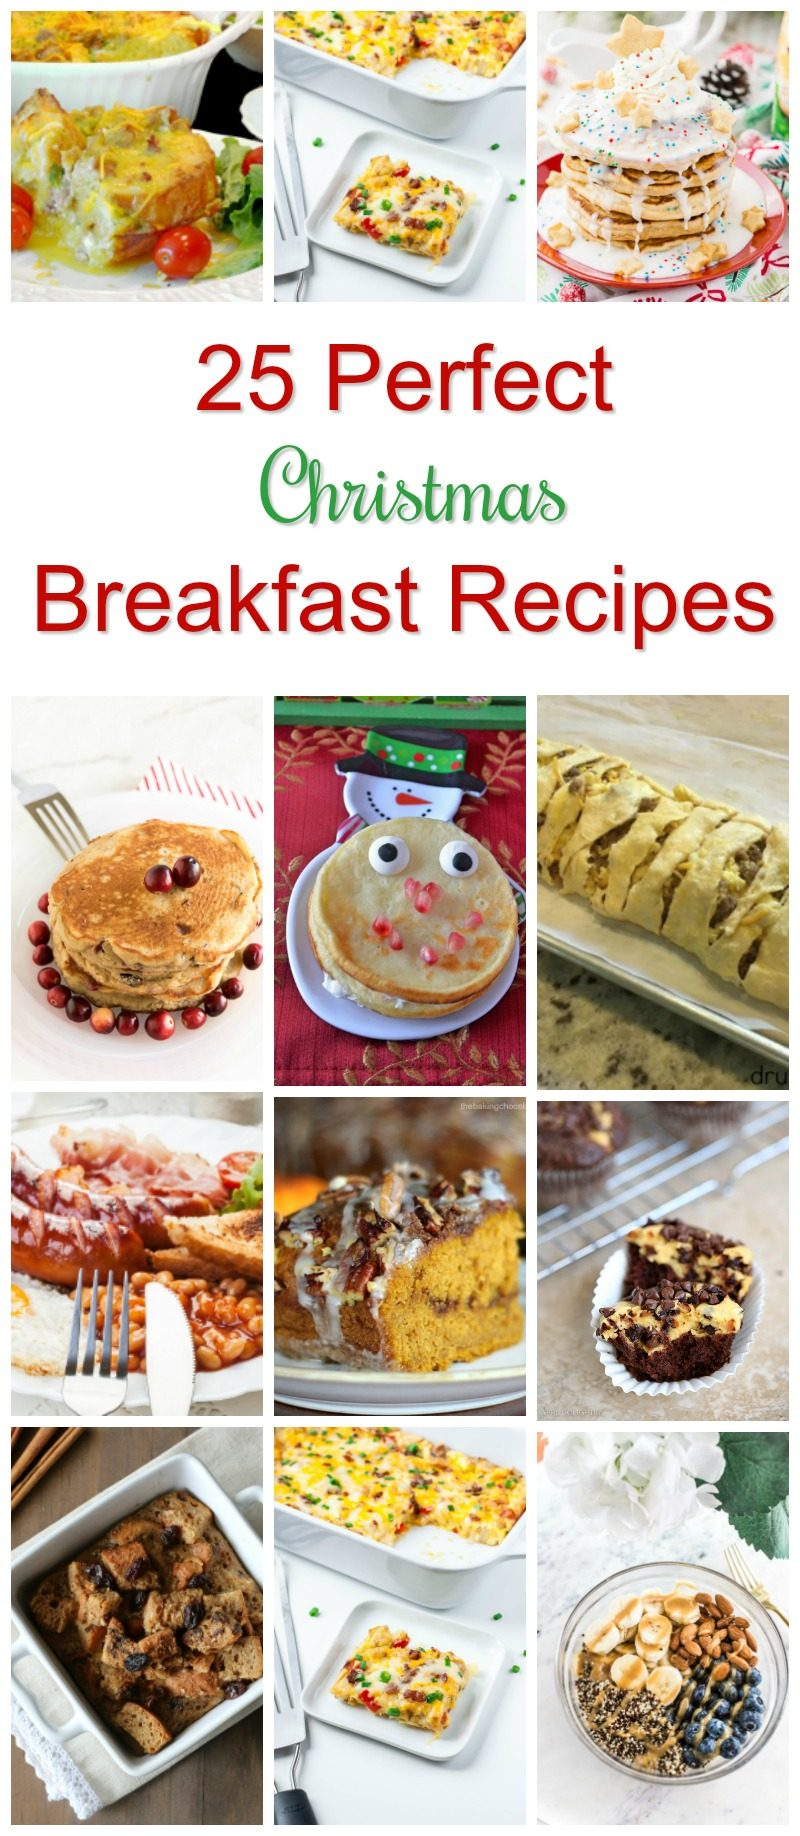 Wanna make Christmas breakfast extra special this year? Try one of these amazing recipes! Better yet, try a few and make a whole breakfast buffet!